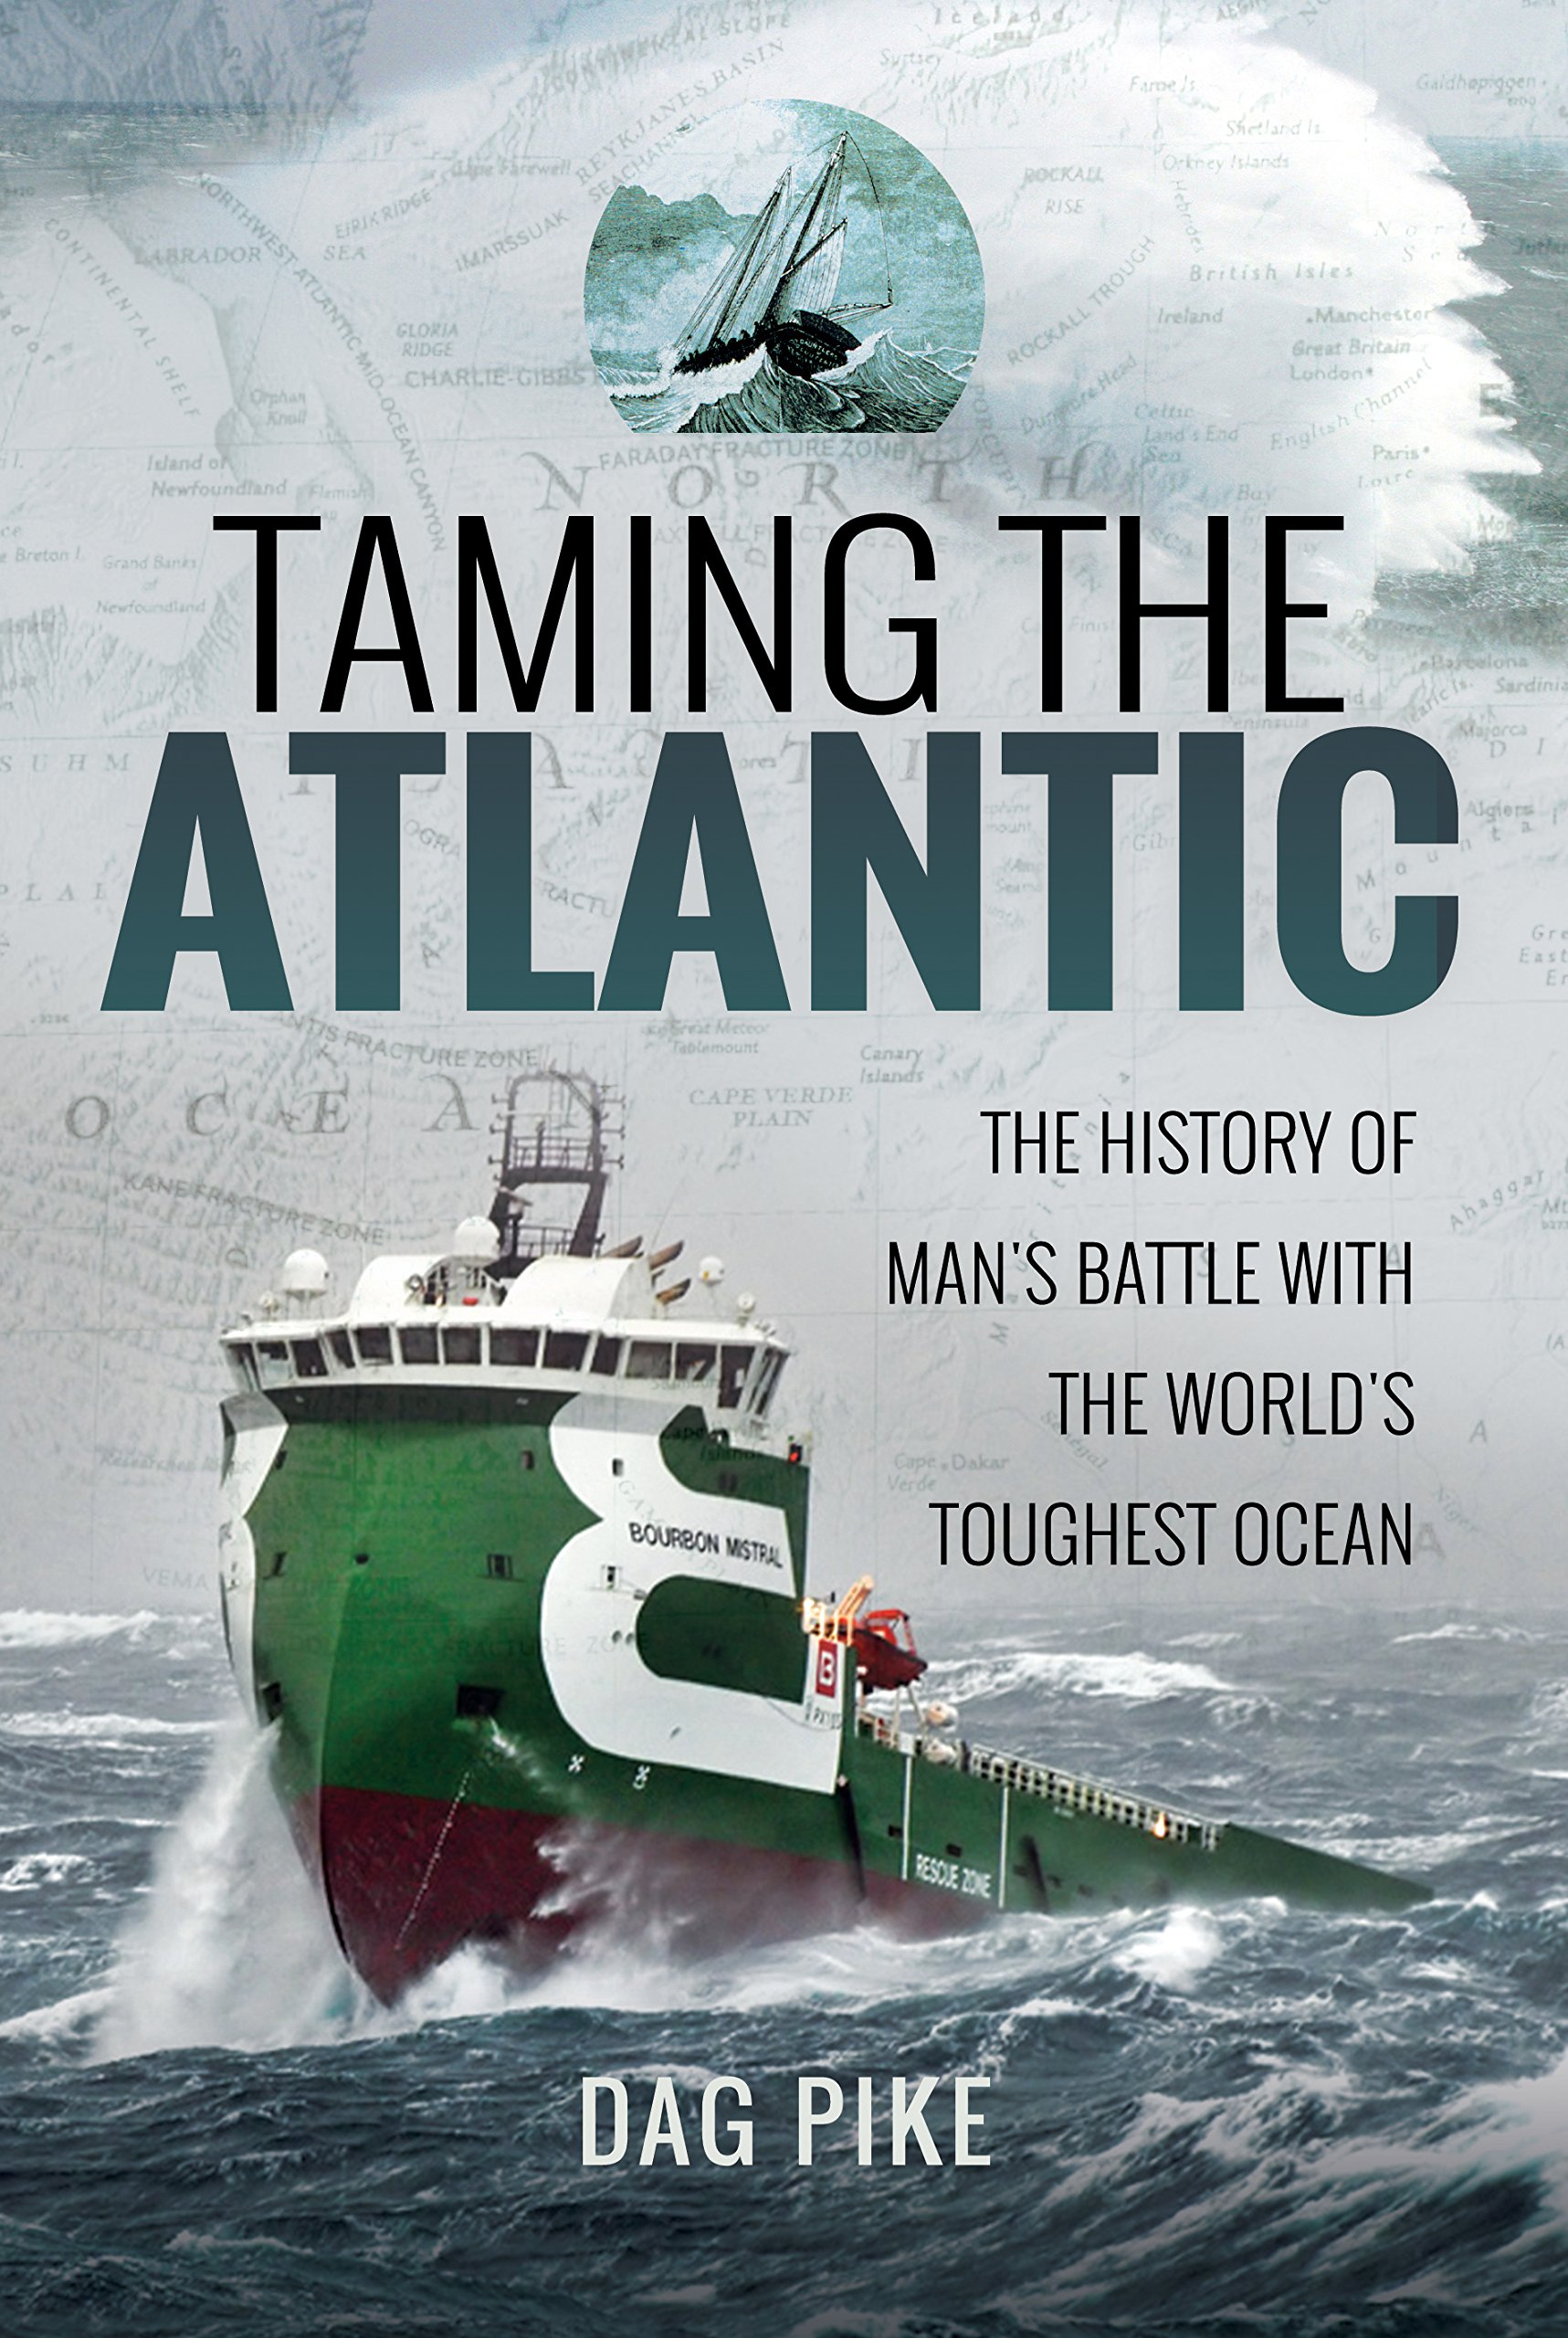 Taming the Atlantic: The History of Man's Battle With the World's Toughest Ocean (Biography) pdf